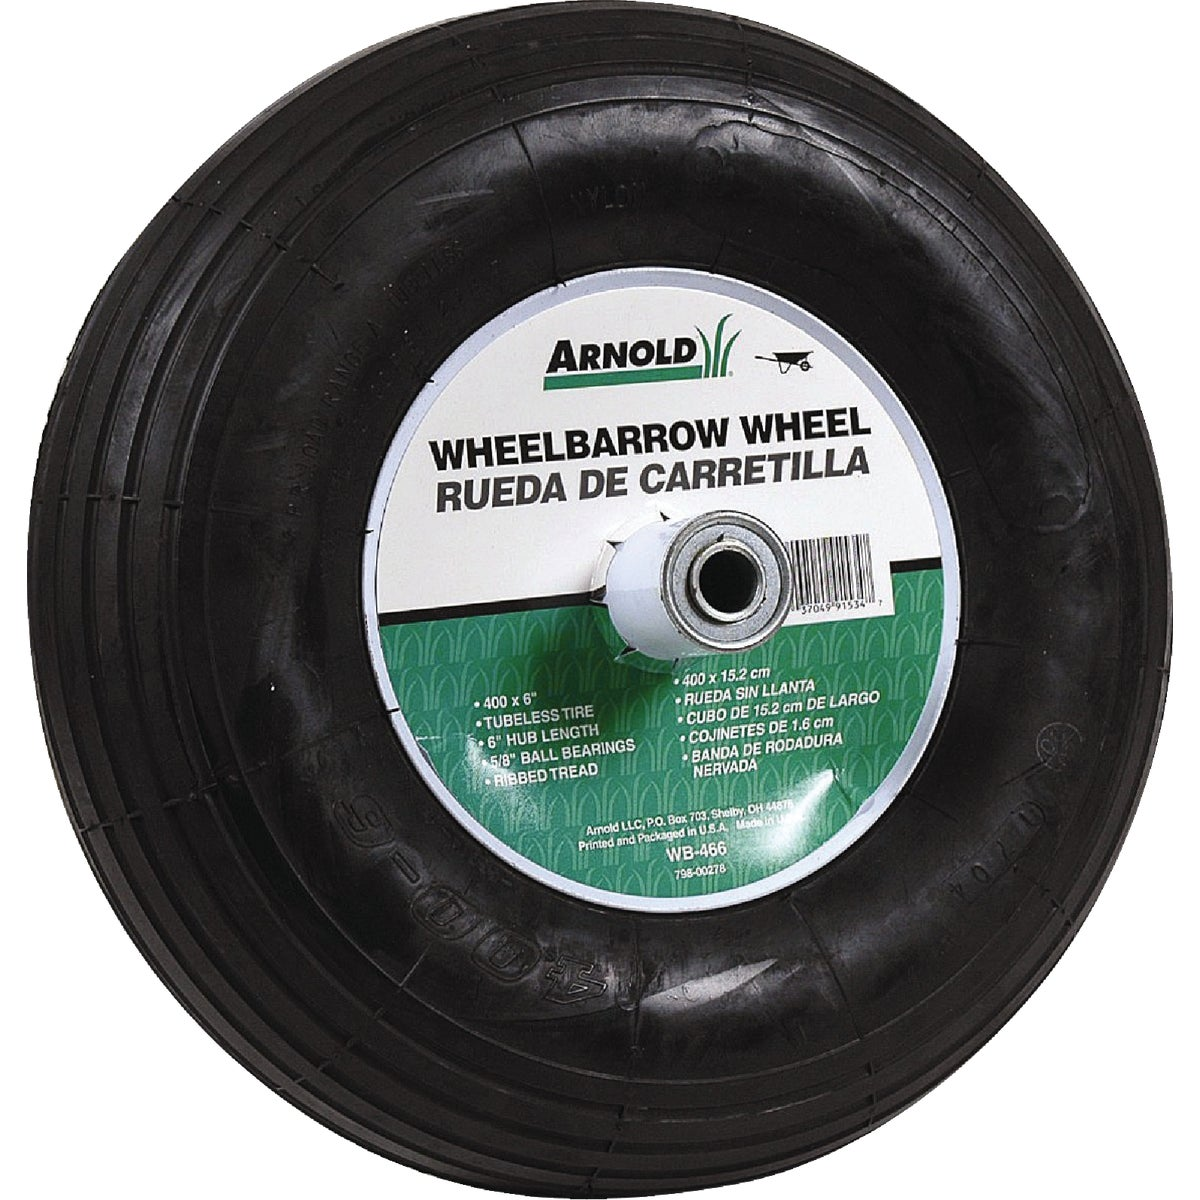 4.00X6 WHEELBARROW WHEEL - WB-466 by Arnold Corp